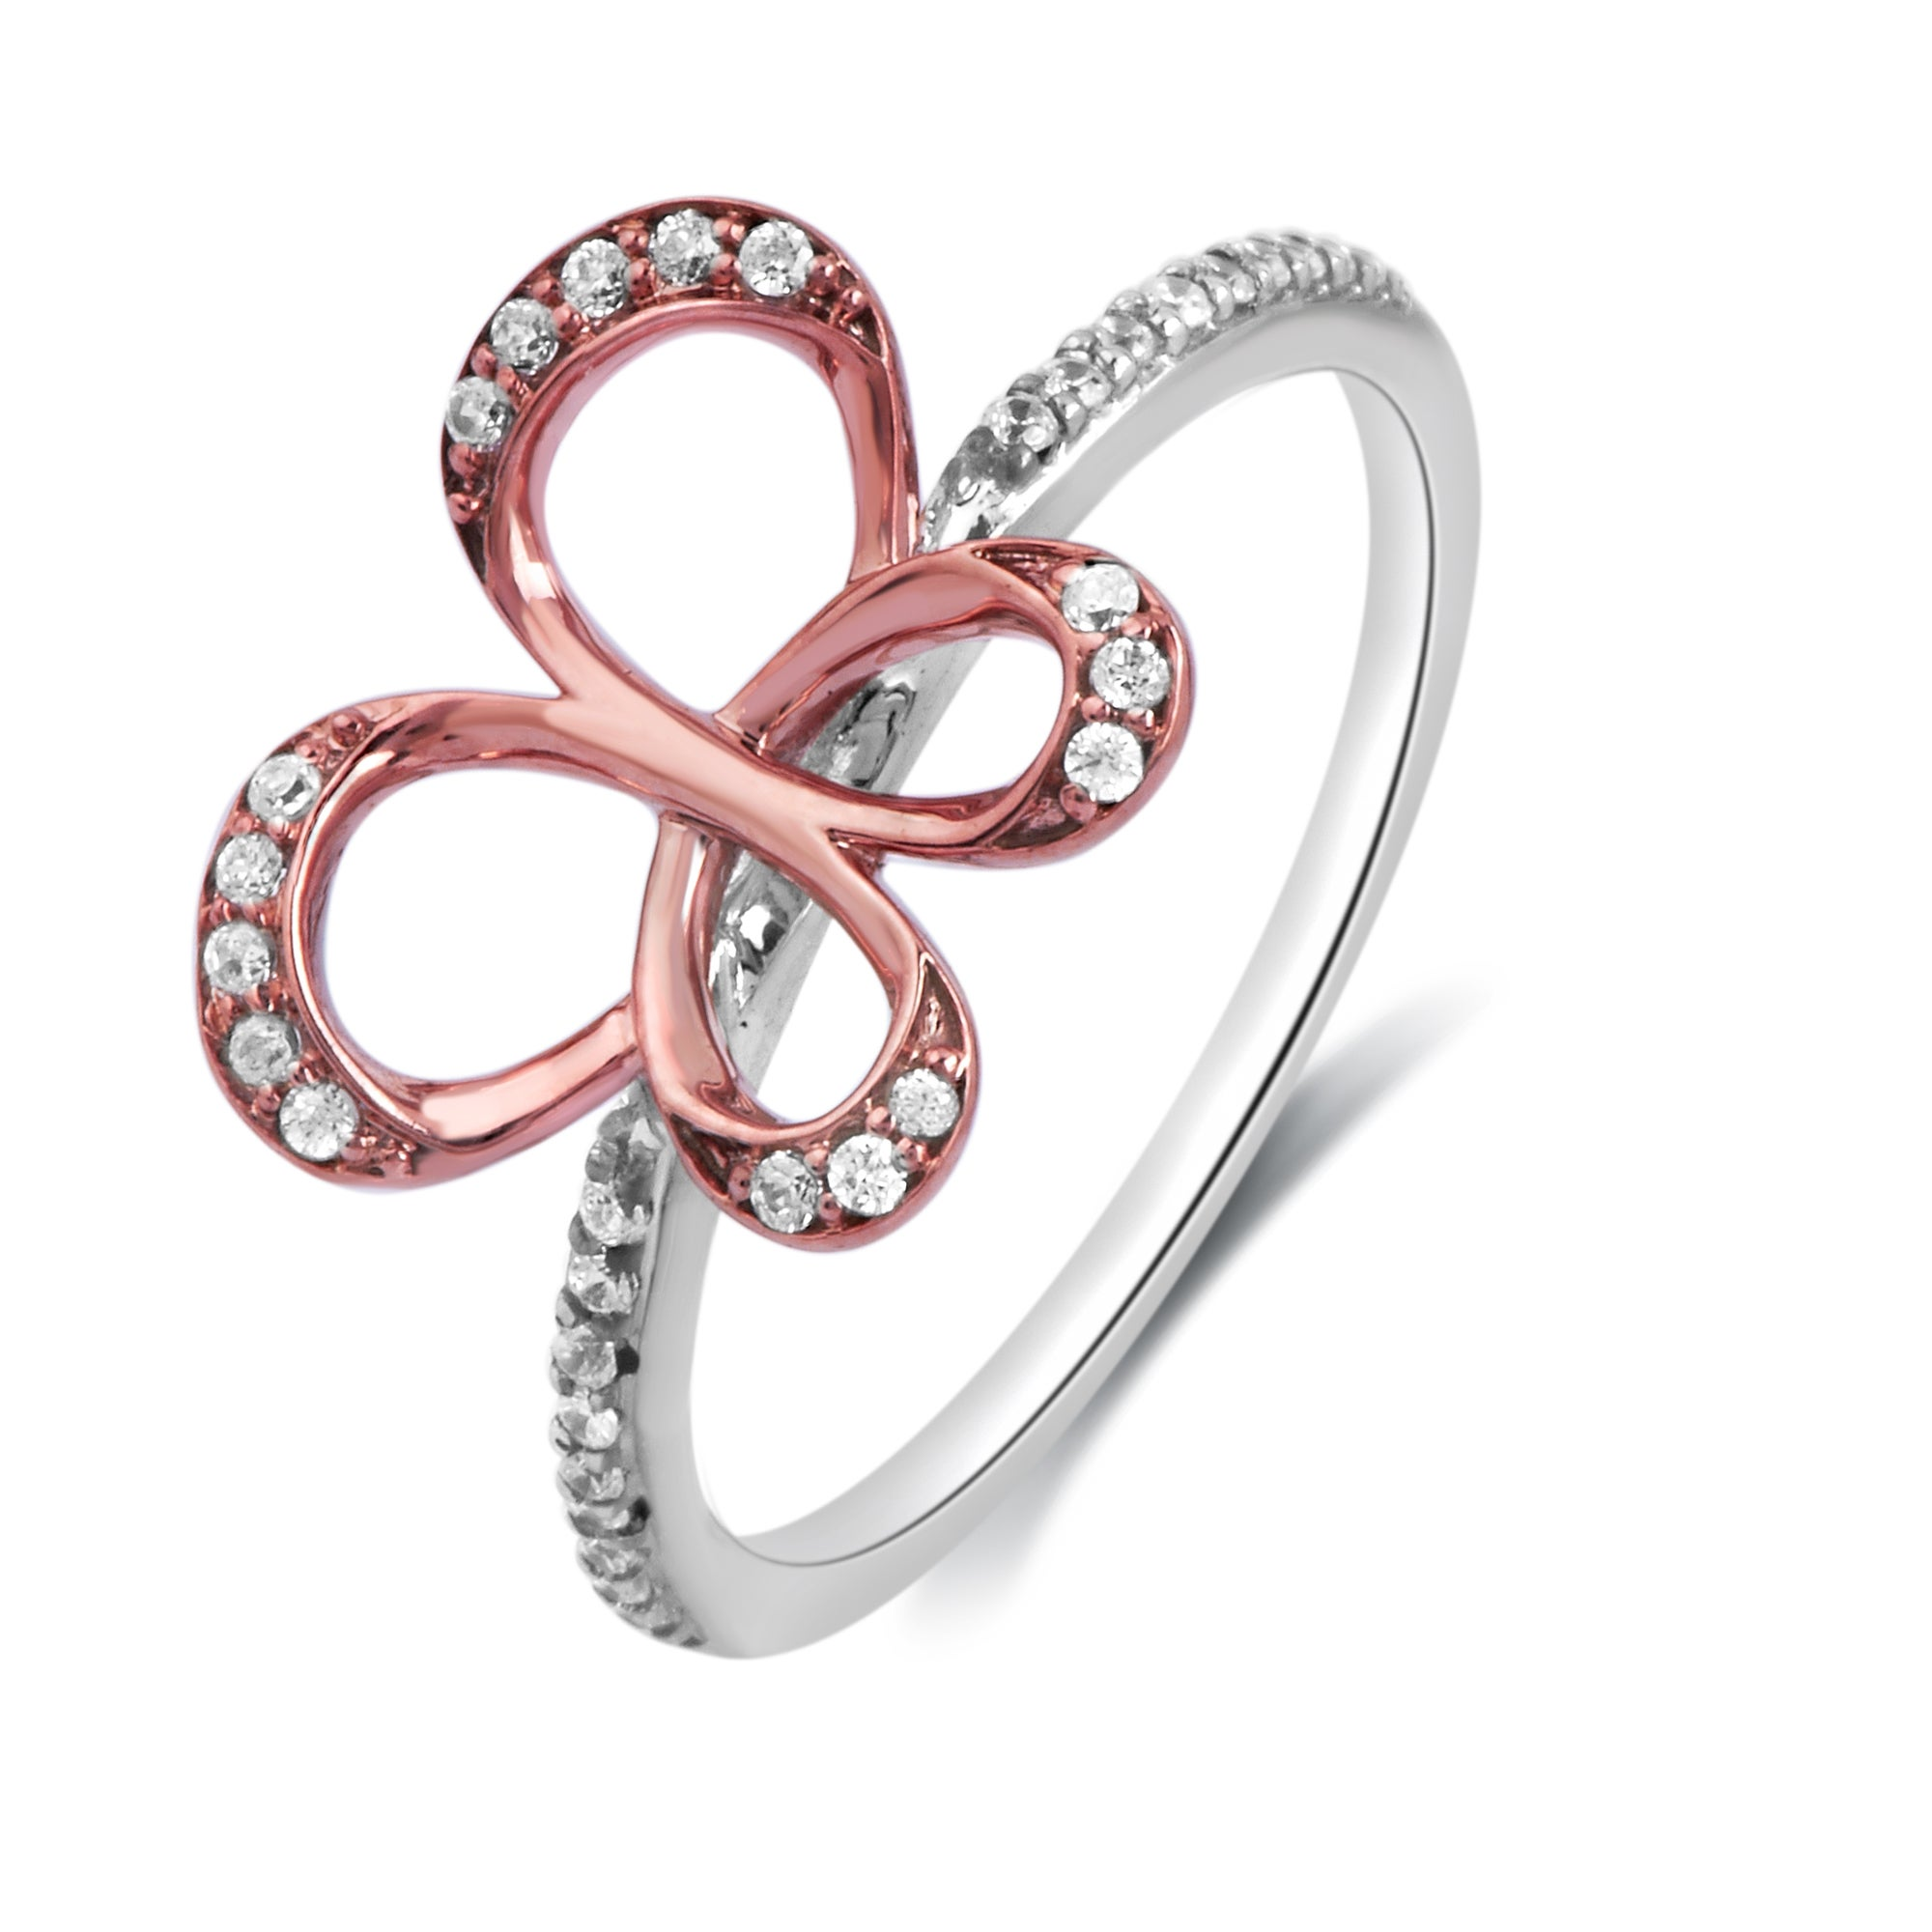 10K Rose and White Gold 1/6ct TDW Diamond Butterfly Ring - Thumbnail 0